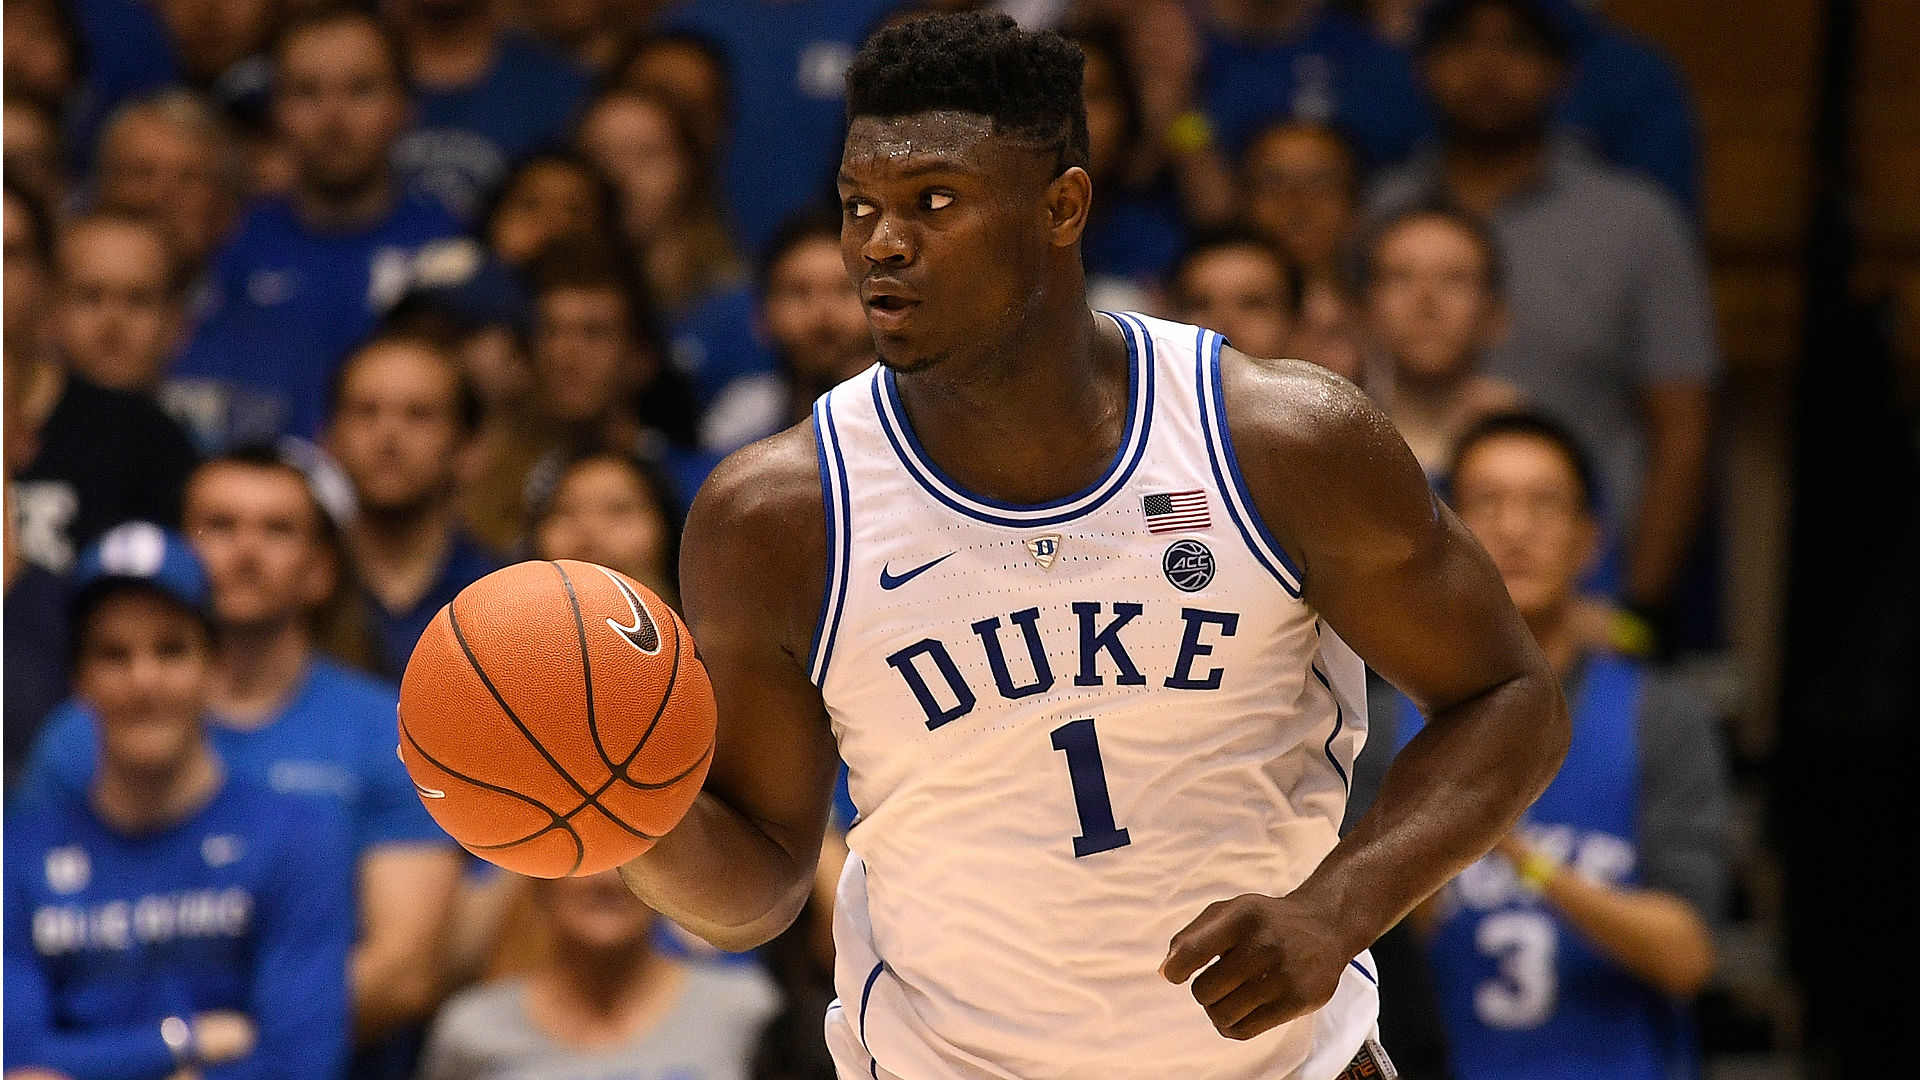 Duke-UNC Tickets Reach Astronomical Prices Ahead Of Tonight's Showdown